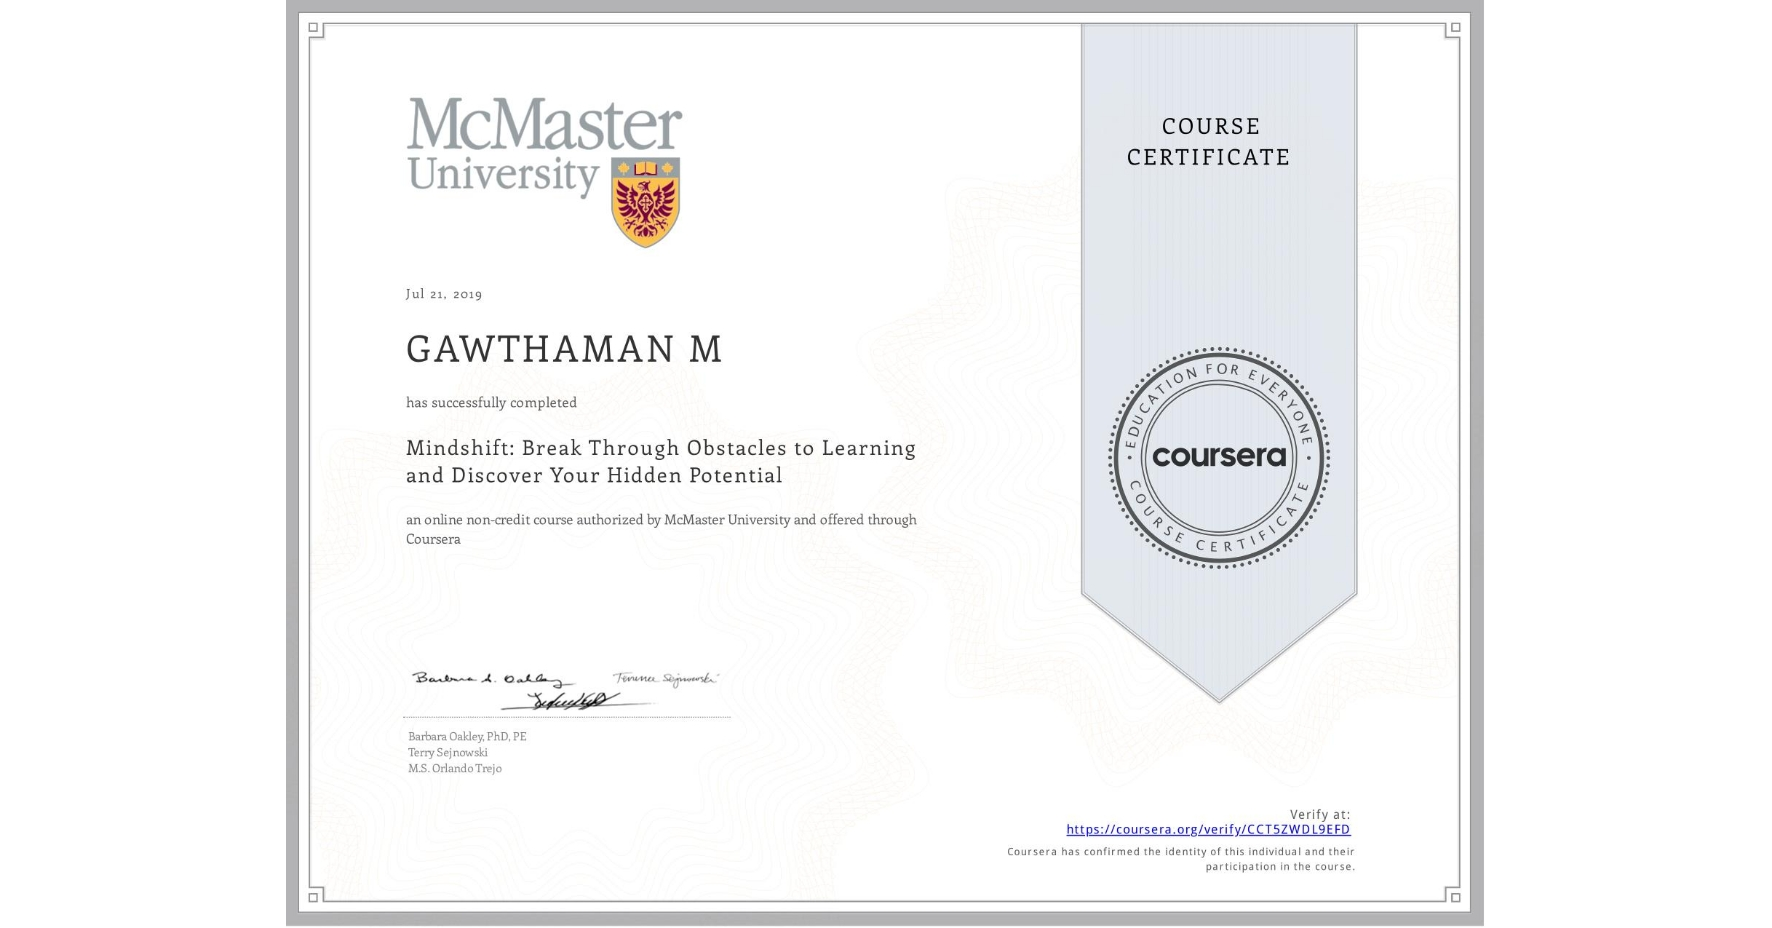 View certificate for GAWTHAMAN M, Mindshift: Break Through Obstacles to Learning and Discover Your Hidden Potential, an online non-credit course authorized by McMaster University and offered through Coursera